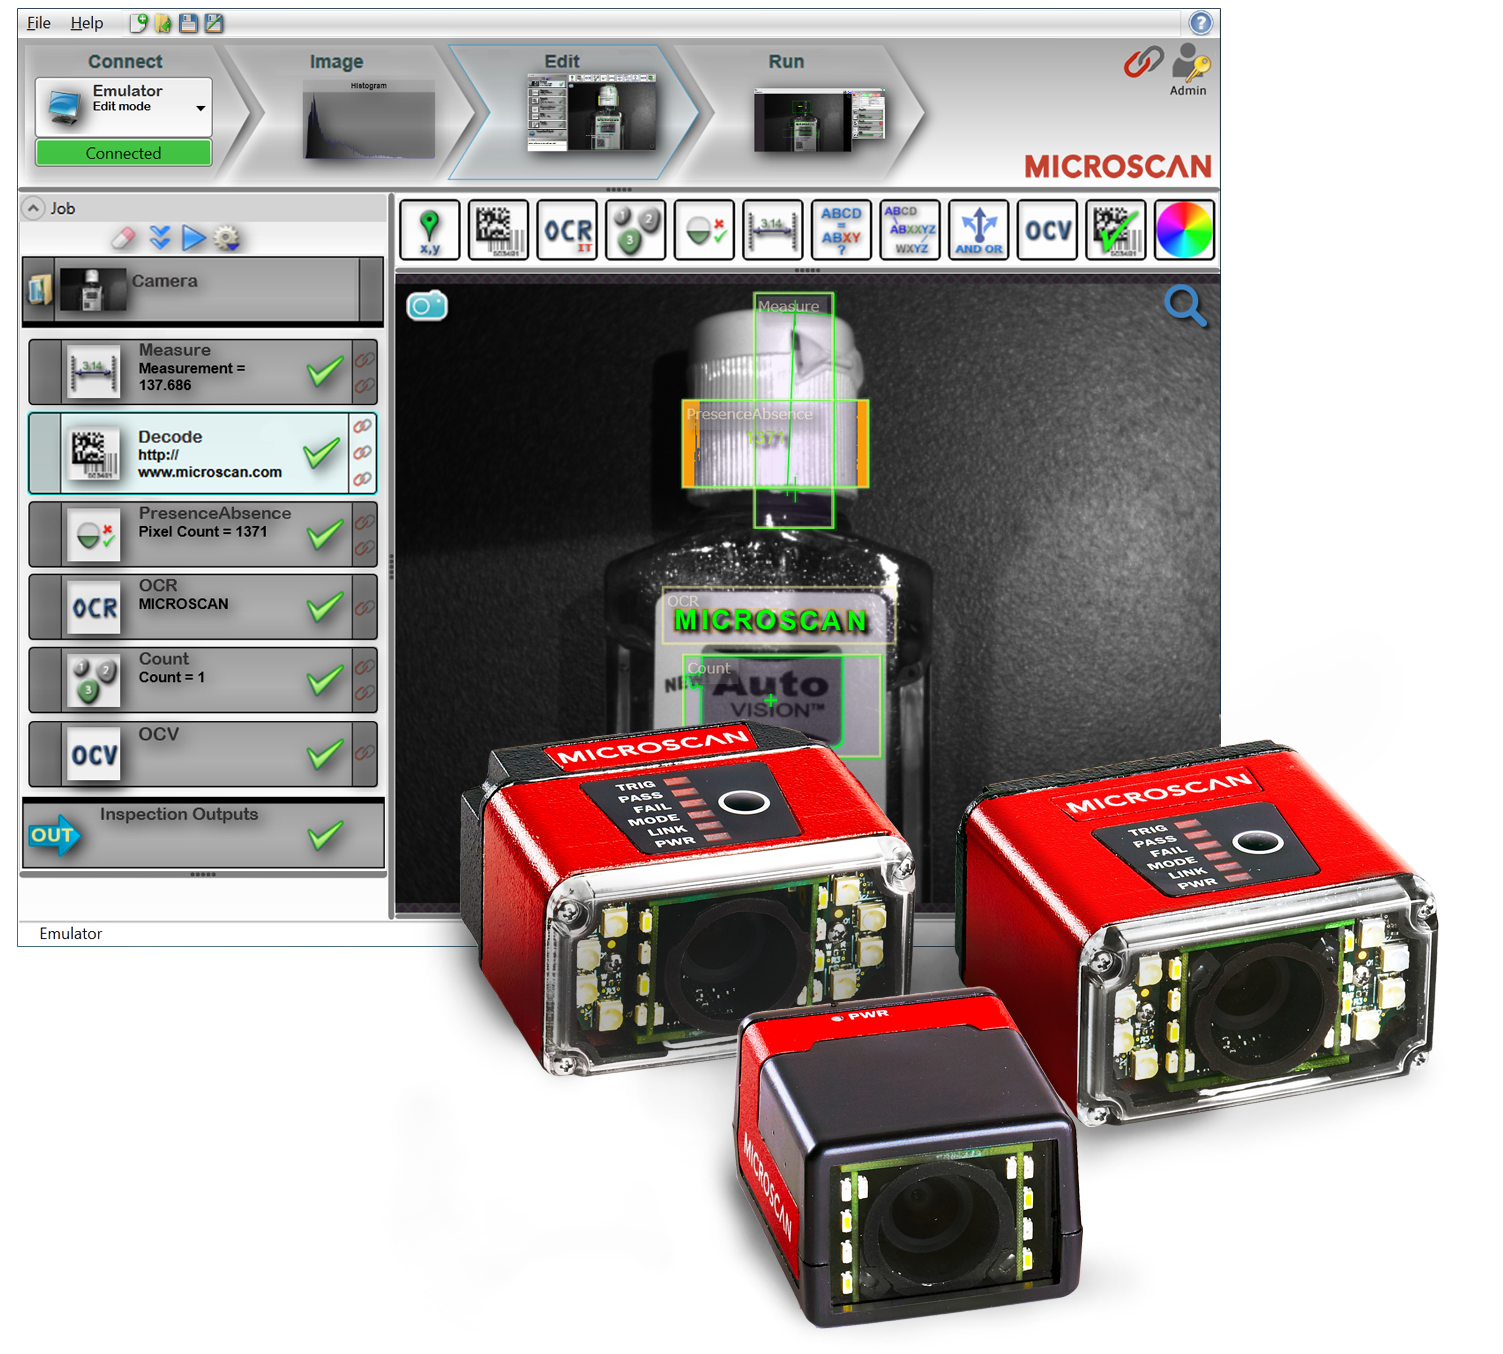 Microscan Releases Autovision 174 Machine Vision Software For